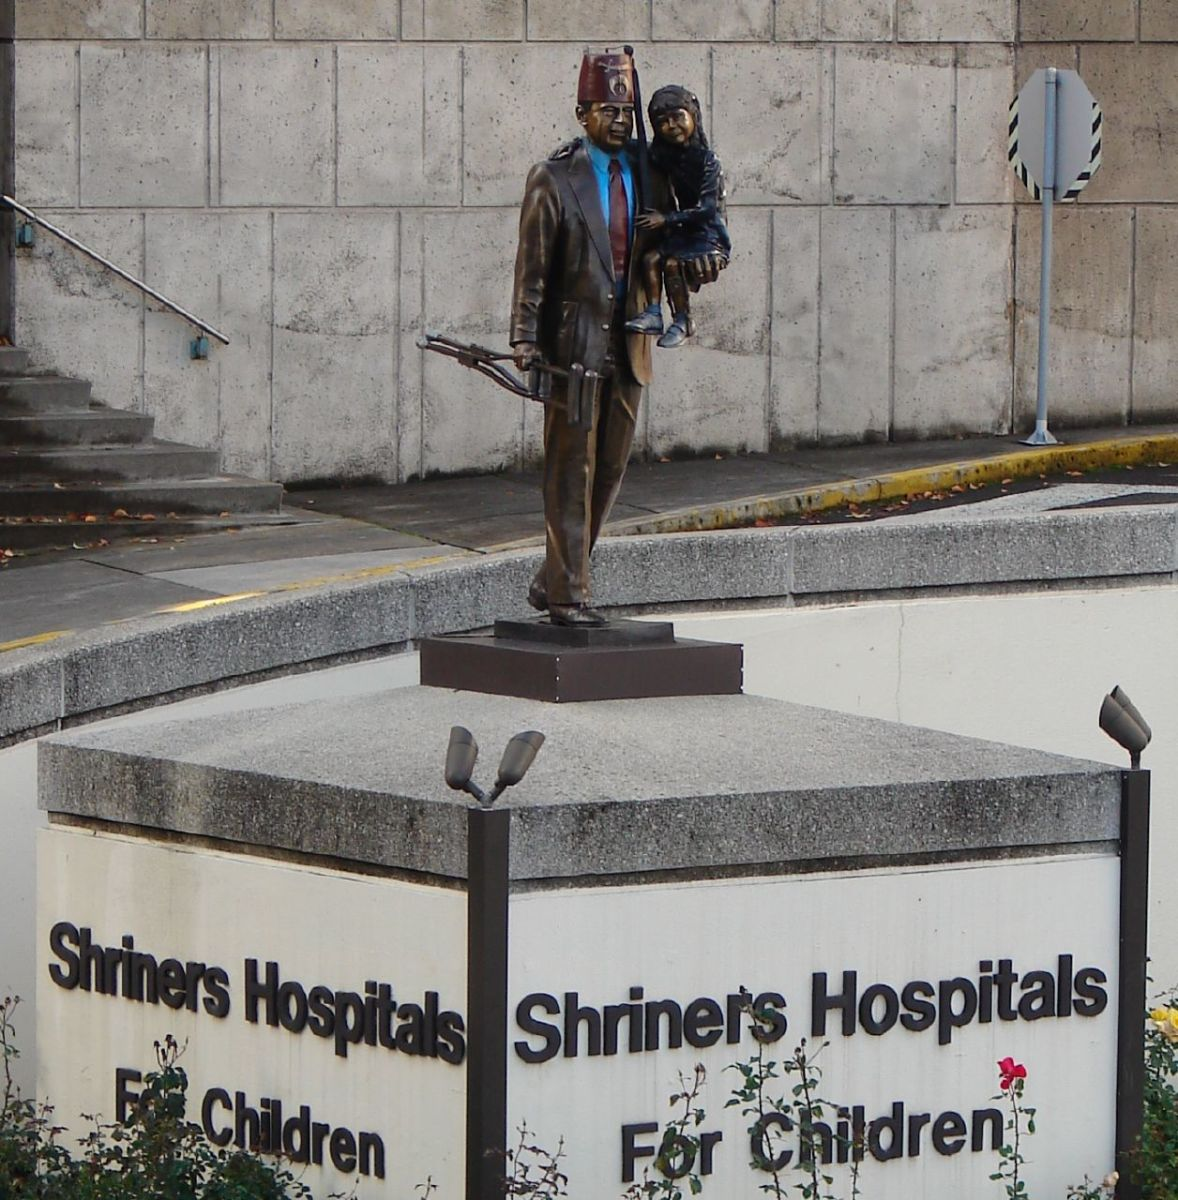 The Shriners Hospital patient experience